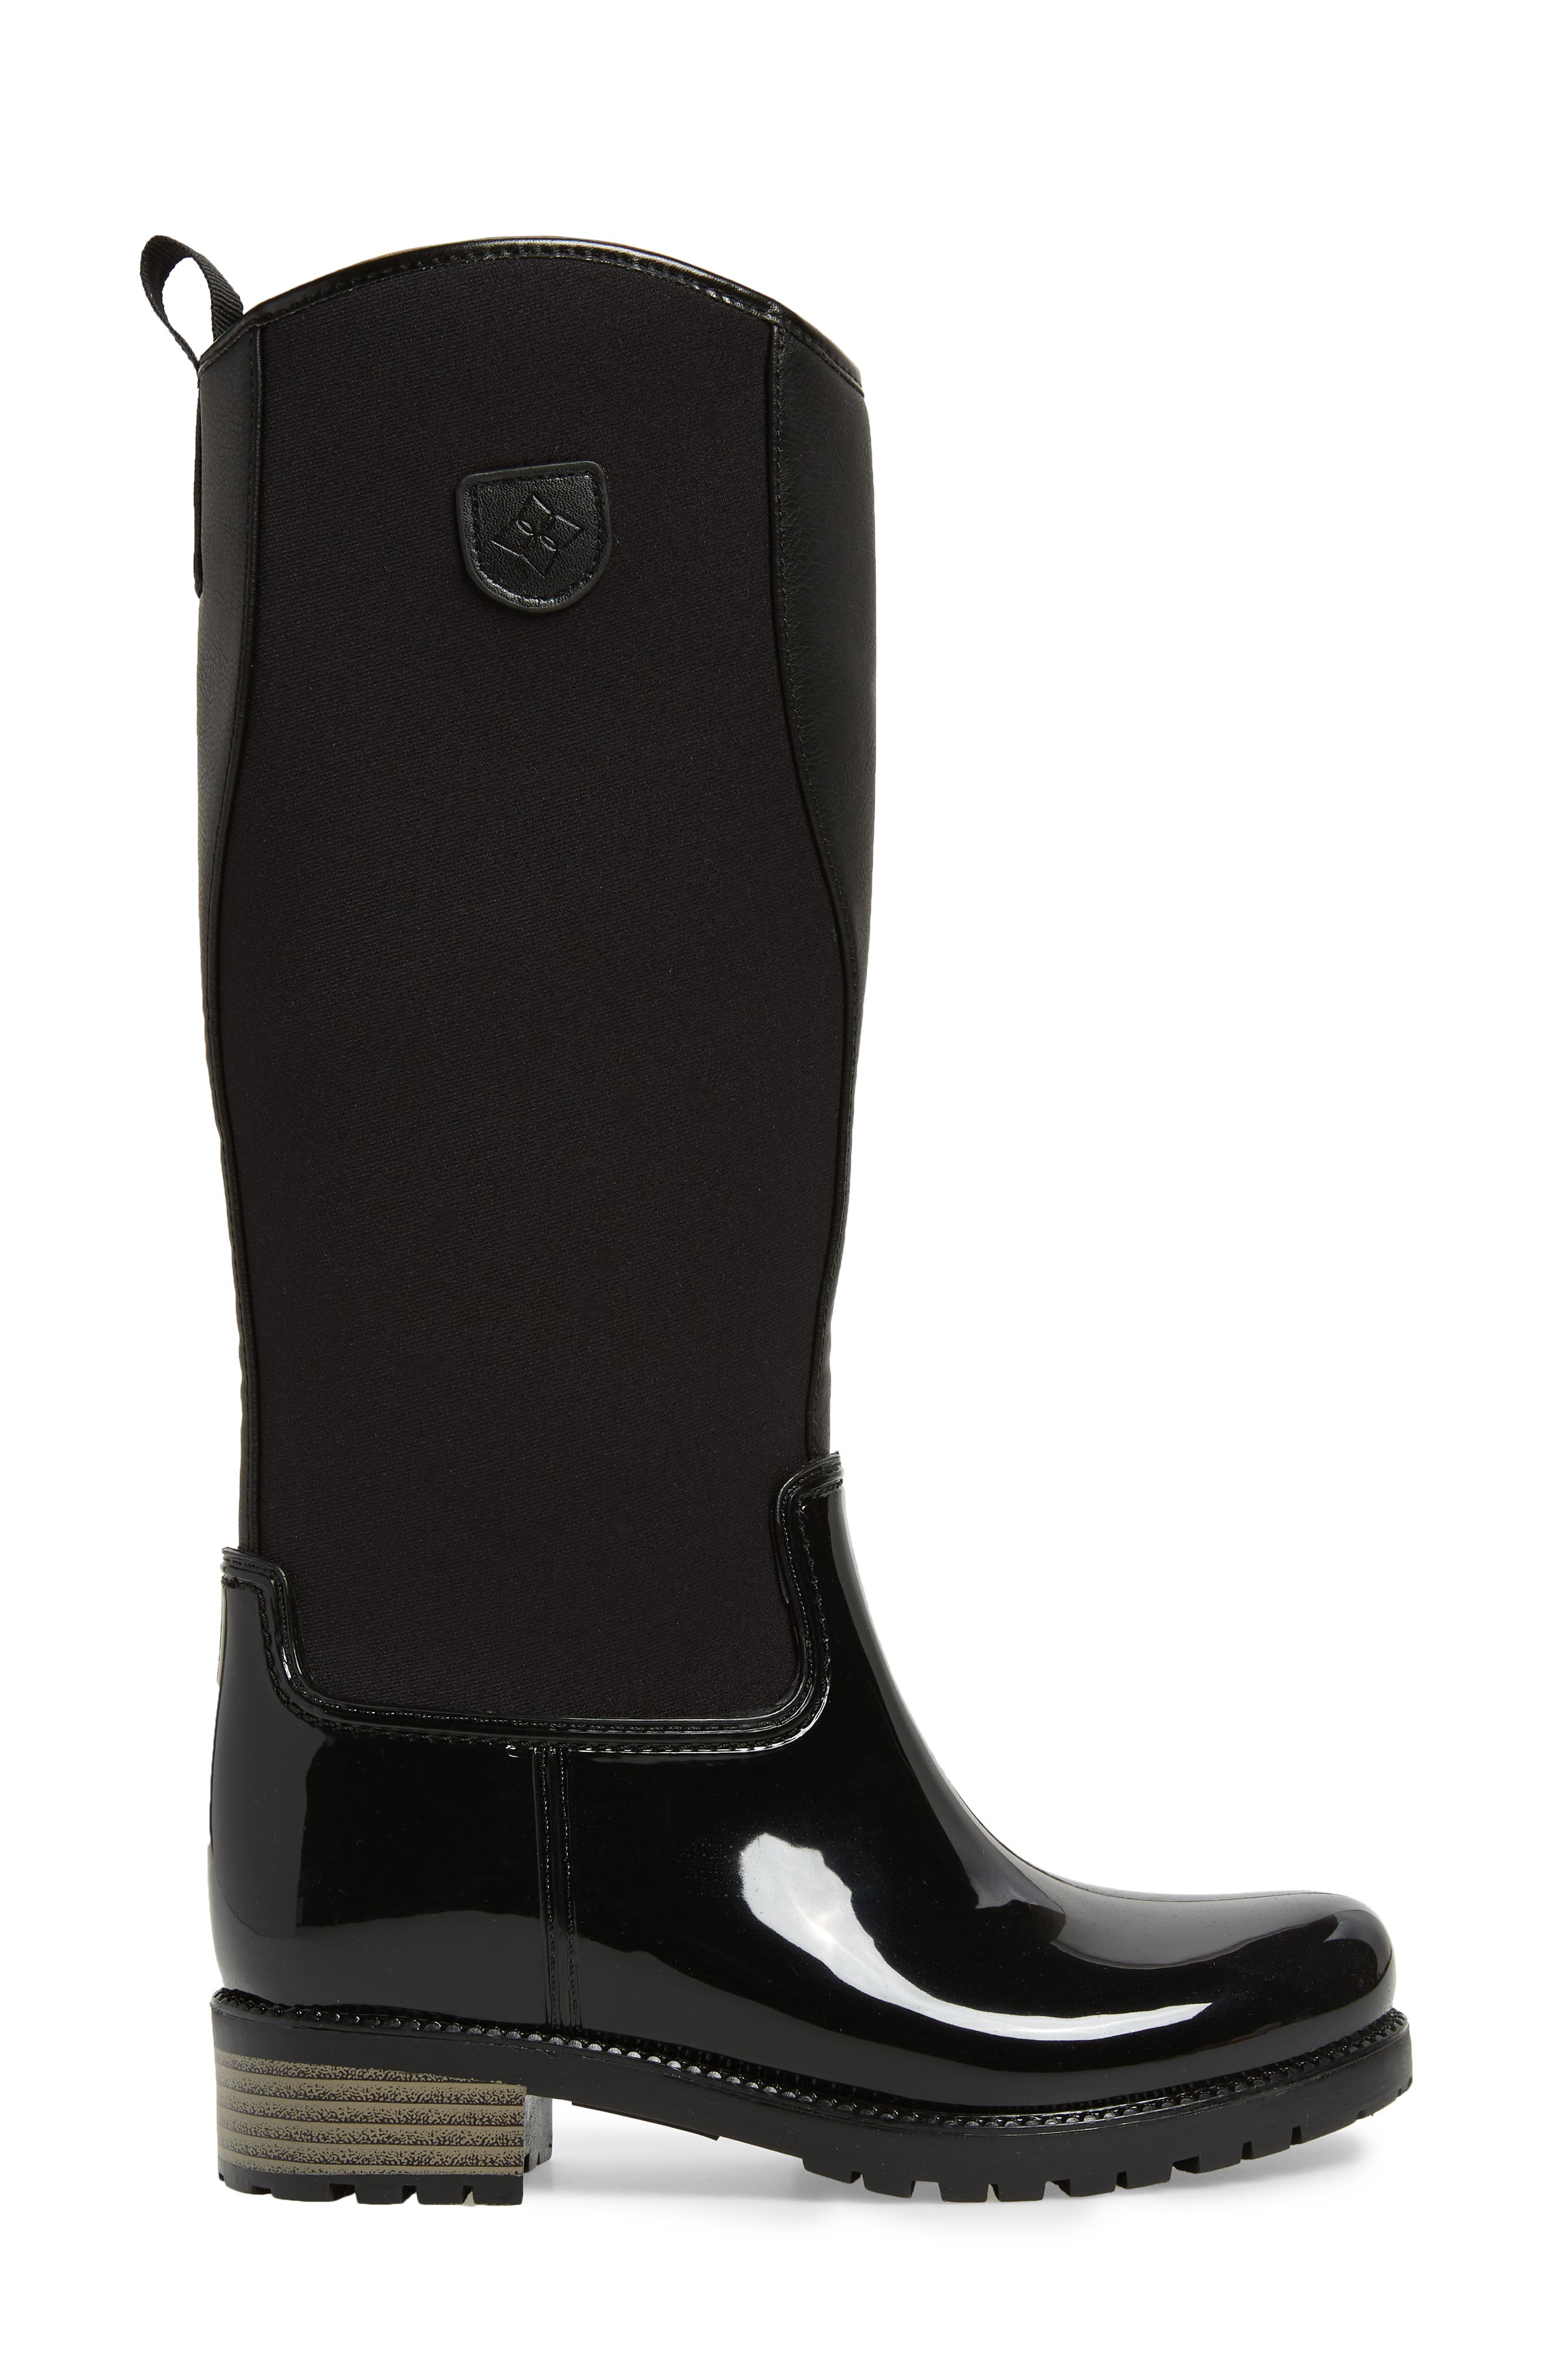 Parma 2 Tall Waterproof Rain Boot,                             Alternate thumbnail 3, color,                             Black Fabric